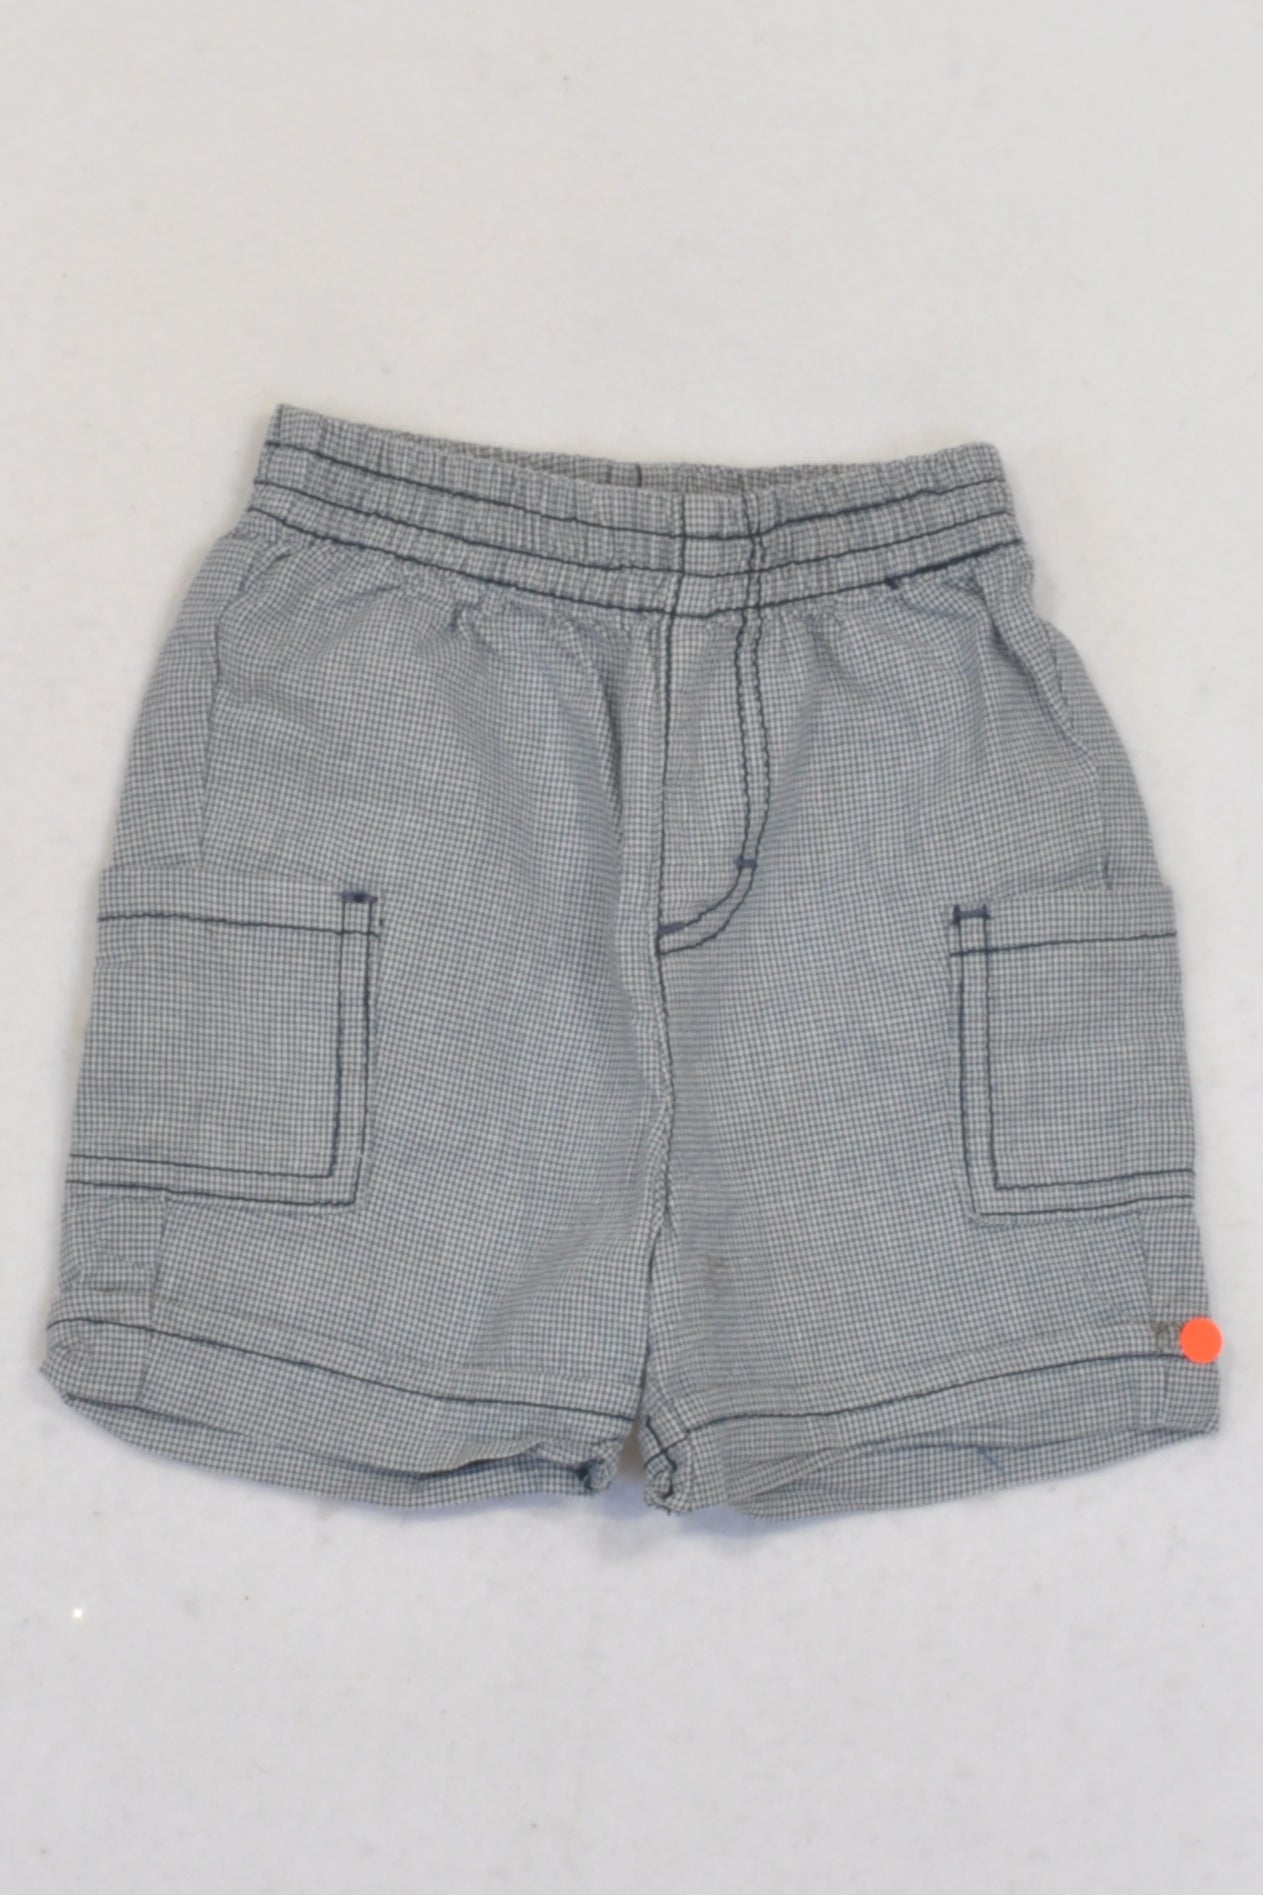 Ackermans Ink Blue Houndstooth Shorts Boys 3-6 months